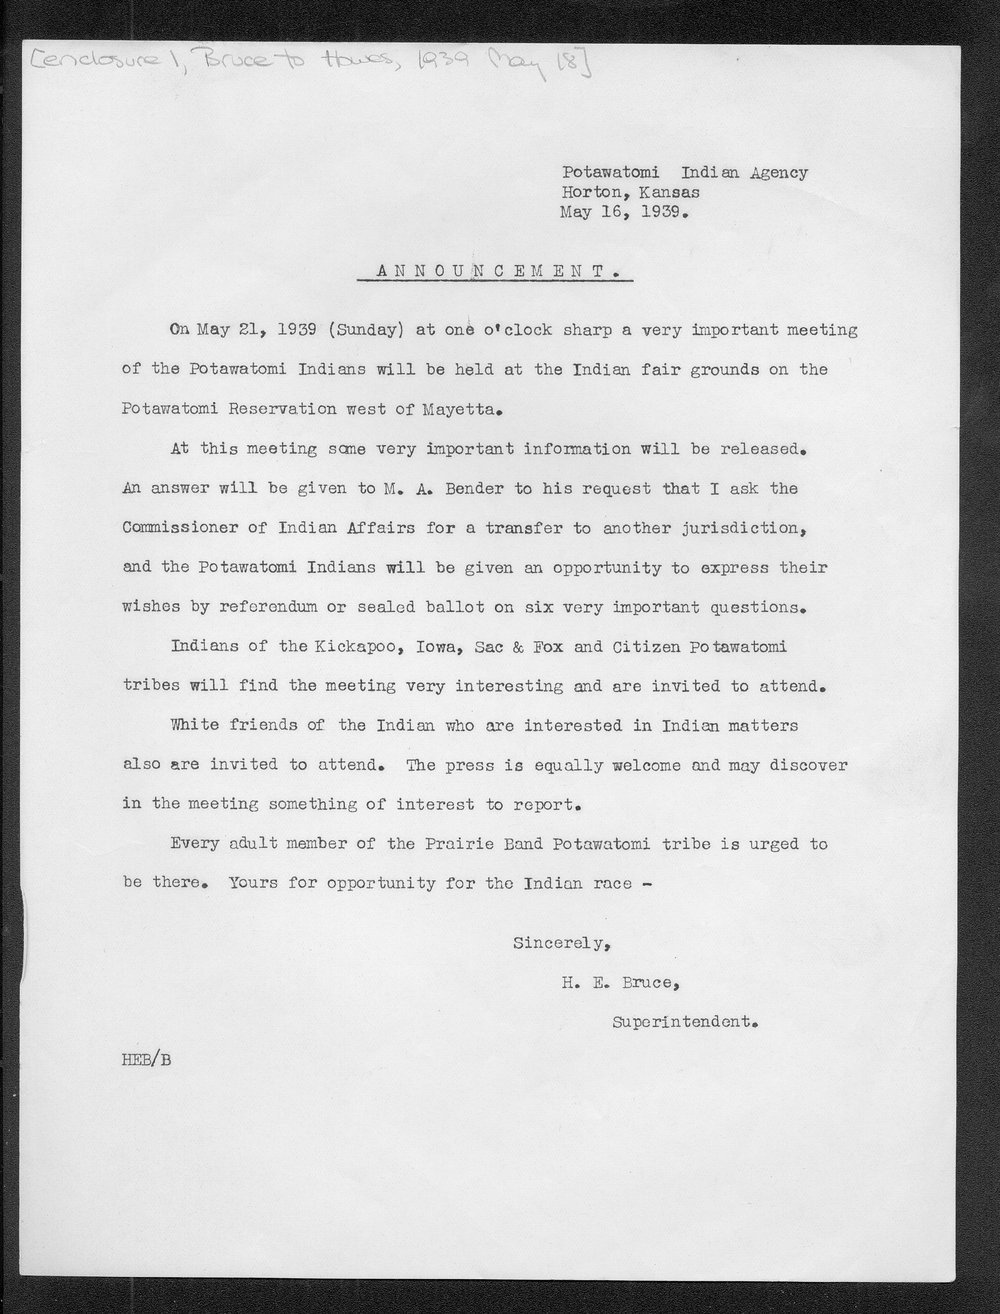 H.E. Bruce to Charles Cecil Howes - 2